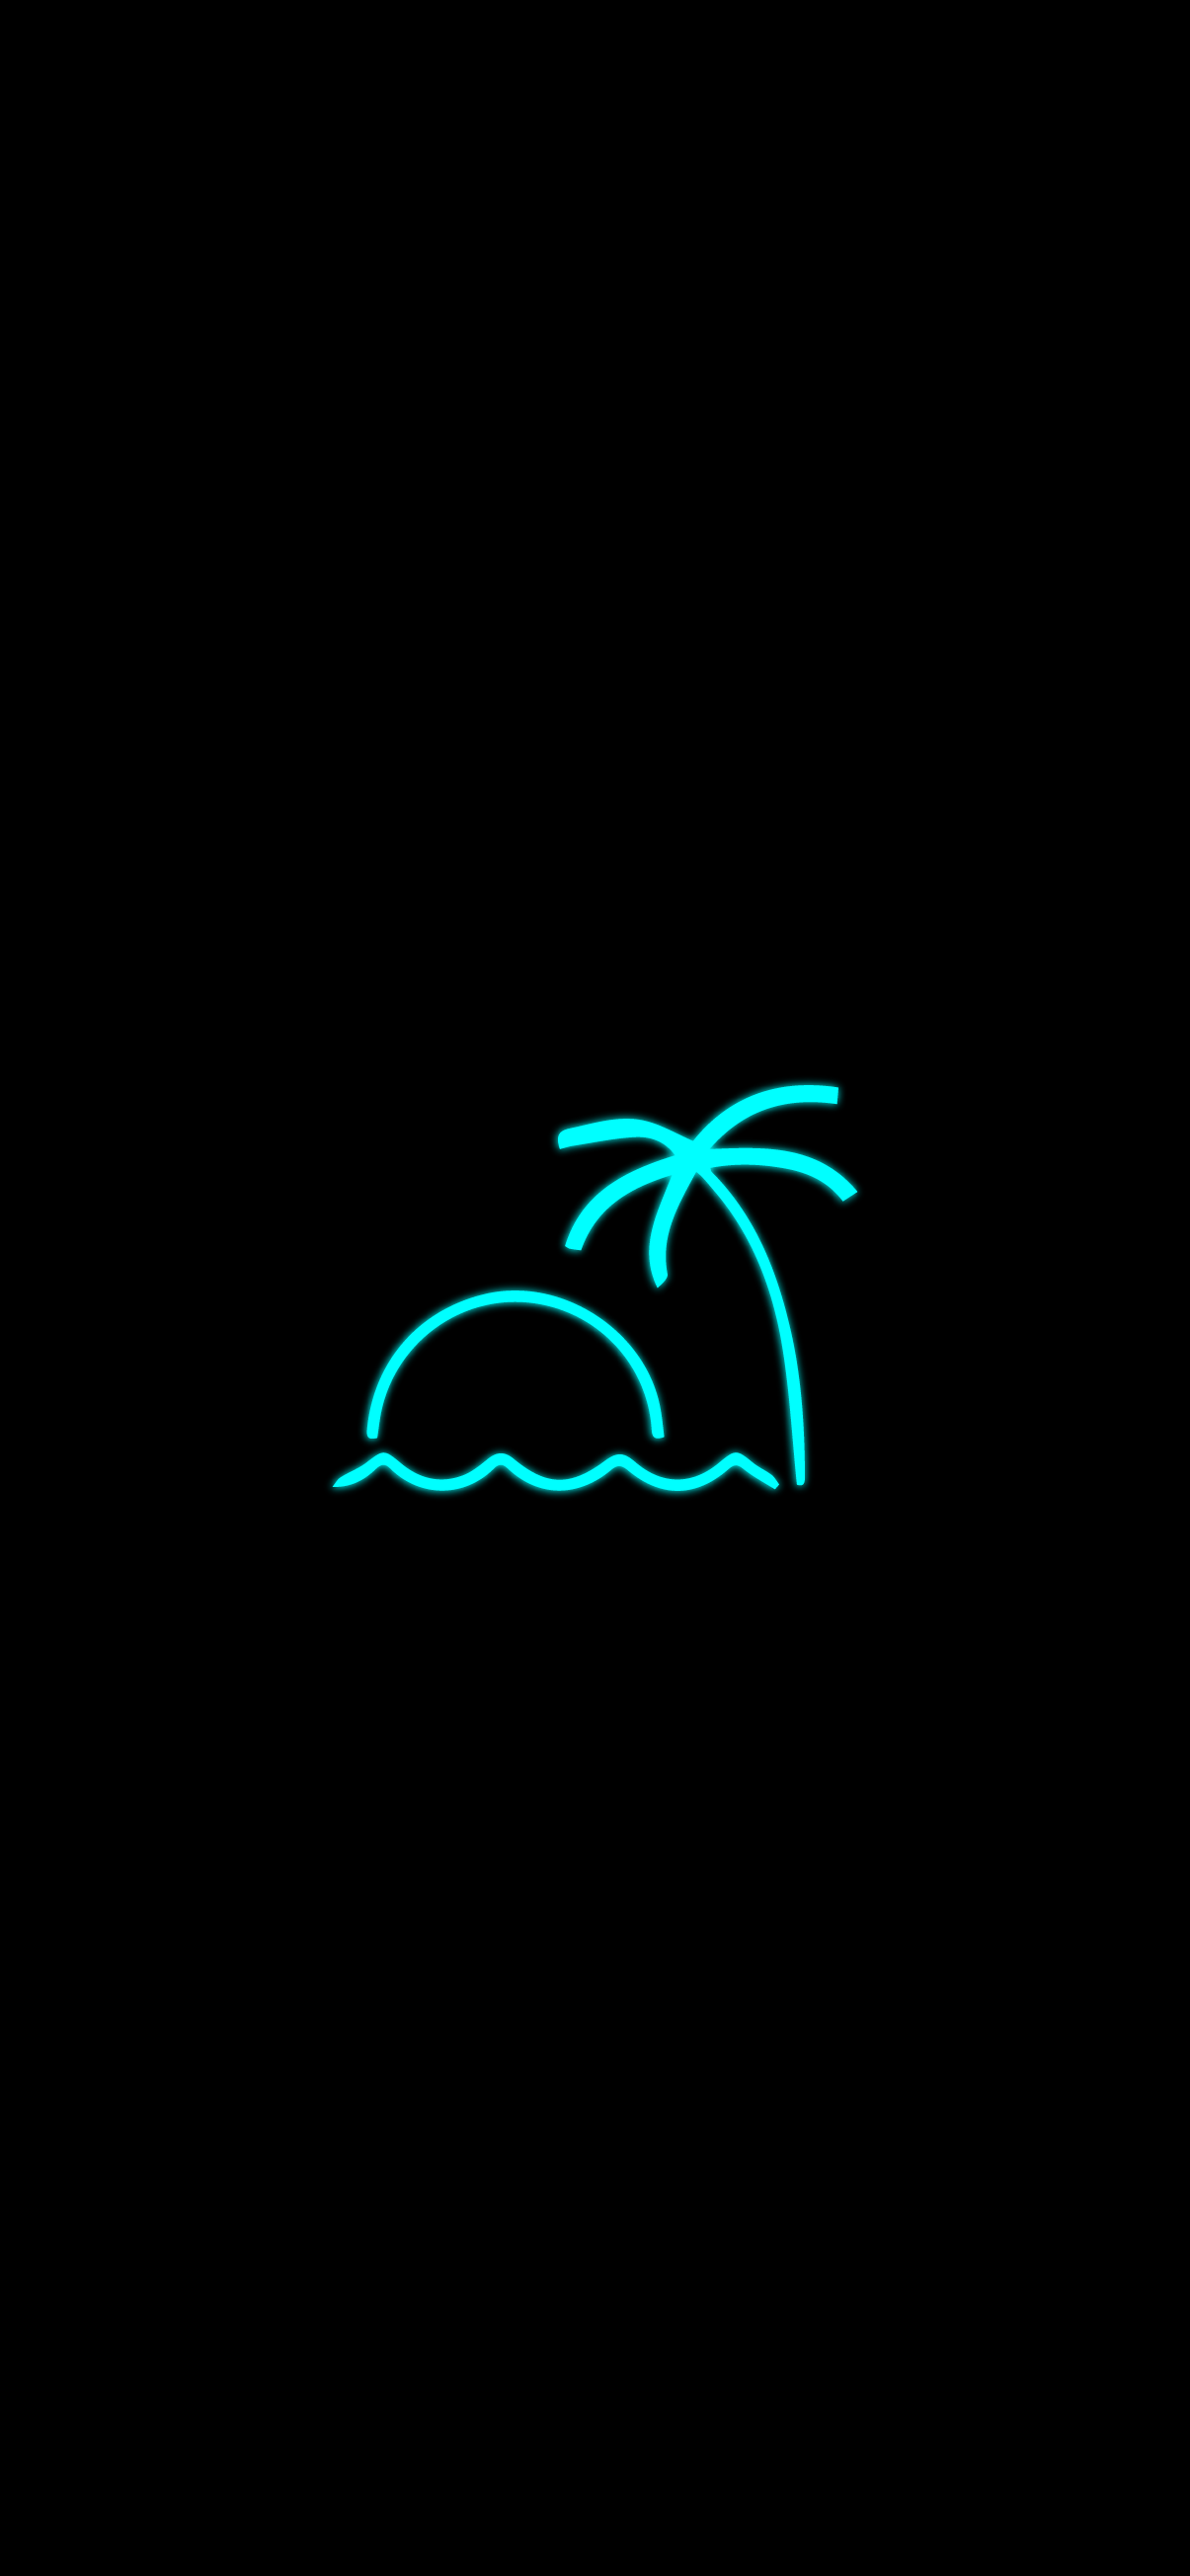 minimalist-amoled-wallpaper-iphone-hd-summer